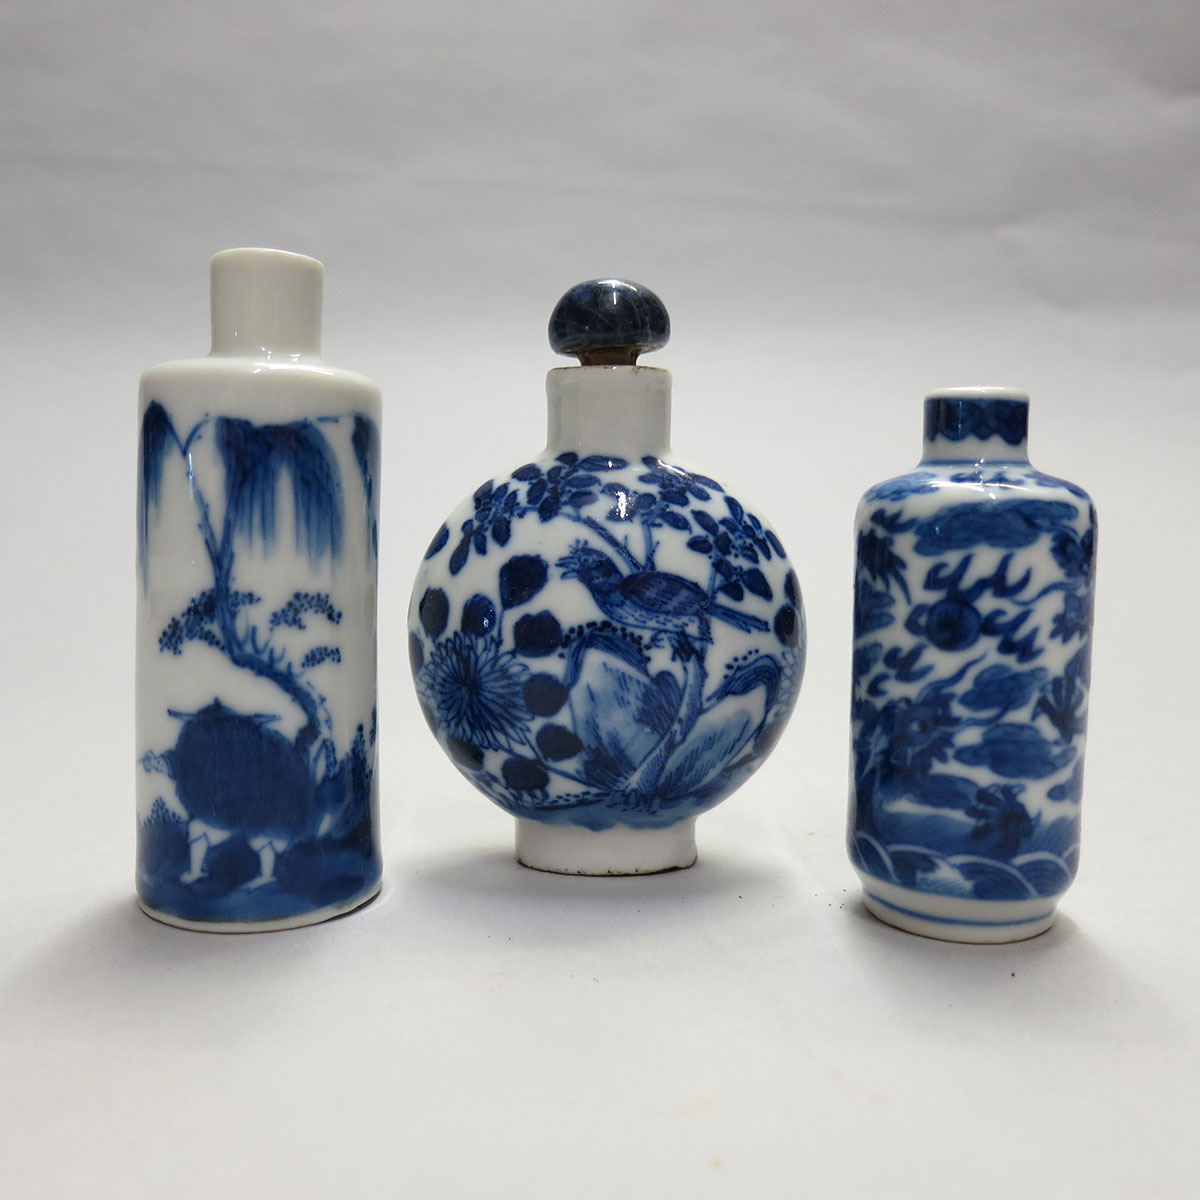 Three Blue and White Snuff Bottles, 19th/20th Century